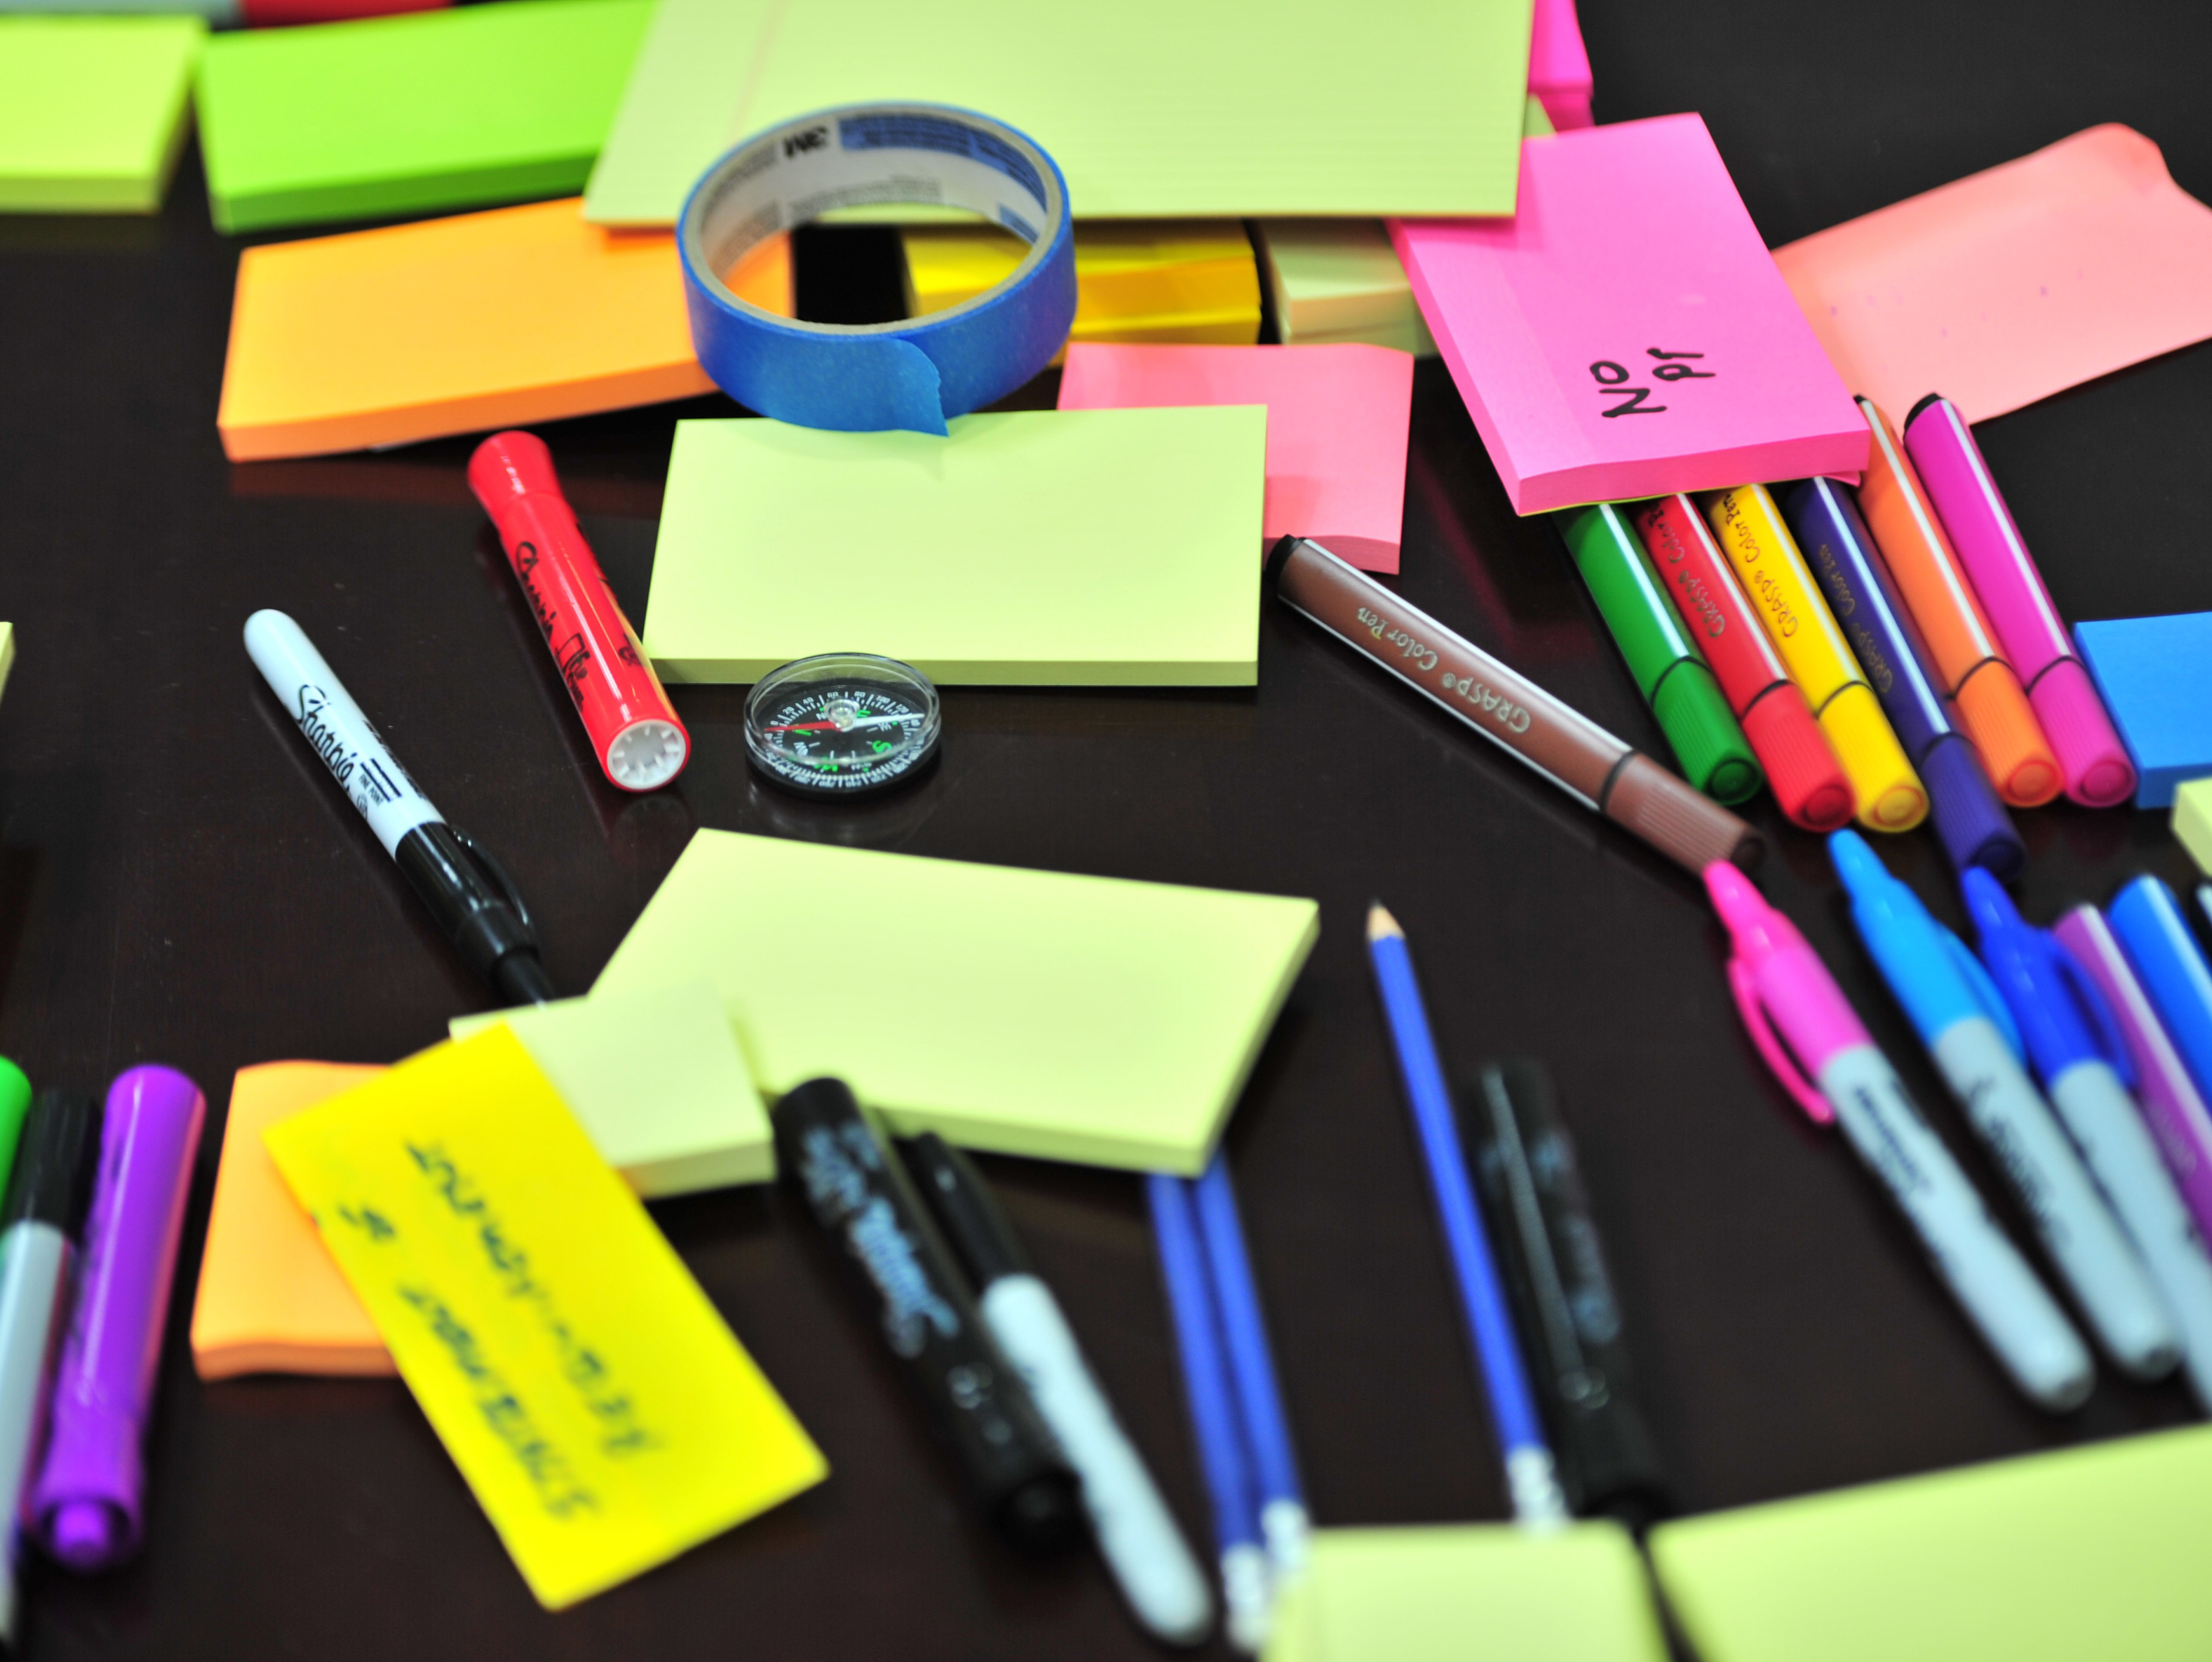 Post-it notes, markers, and pens on a desk. [pexels | photo by frans-van-heerden]